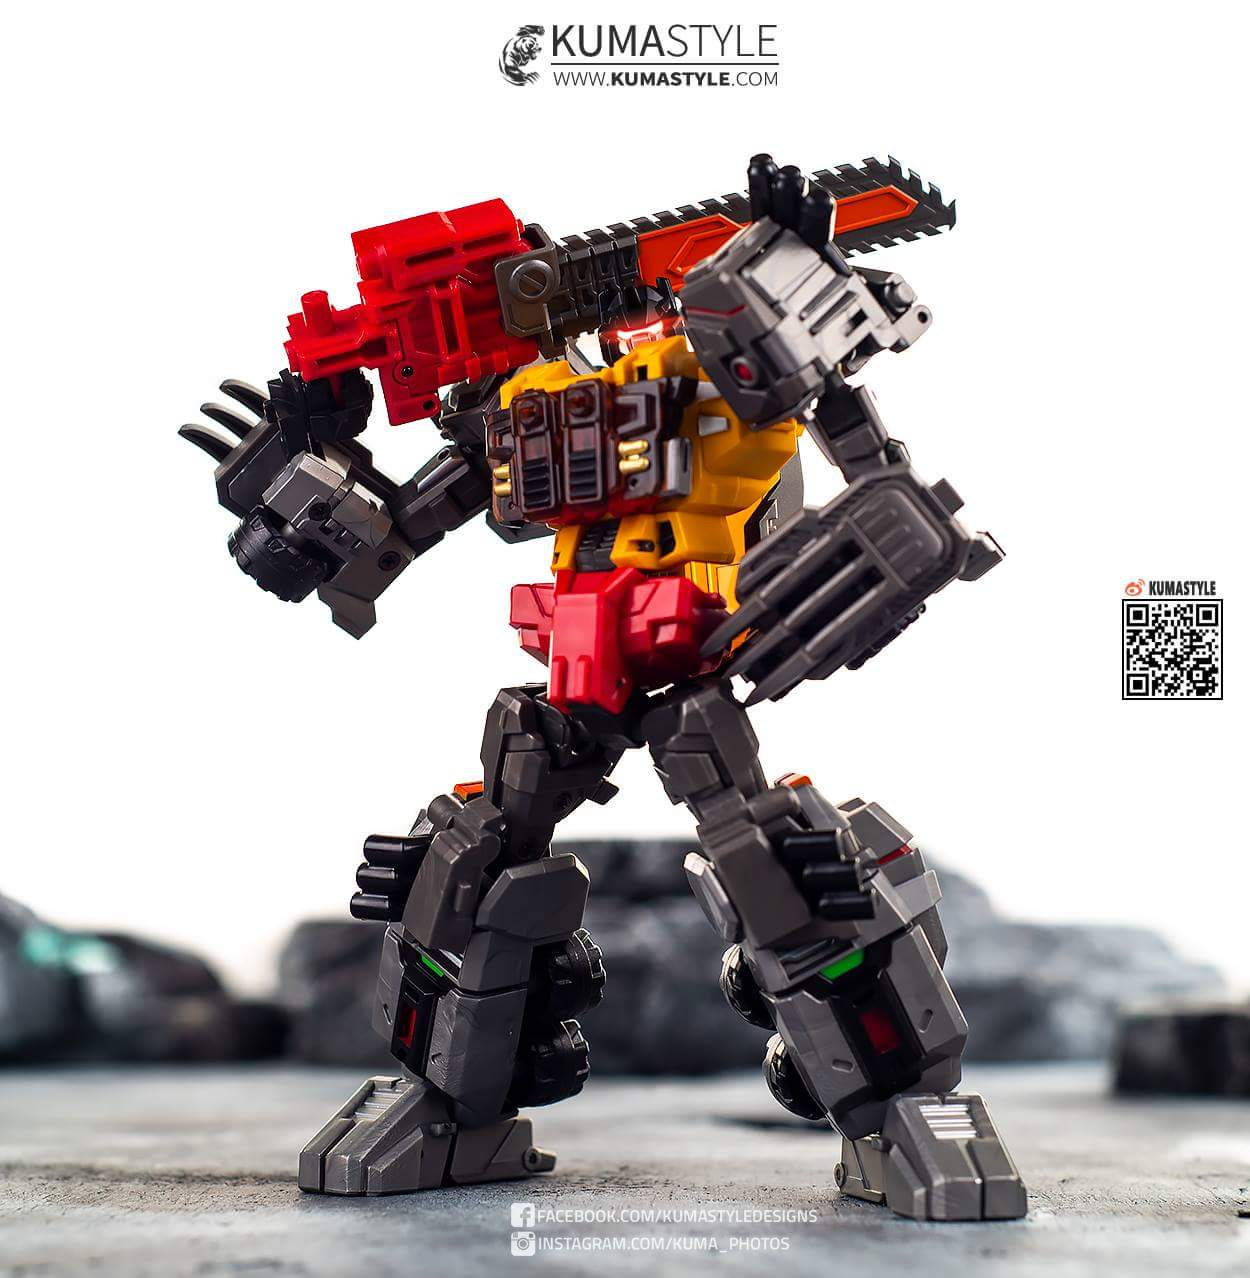 [FansProject] Produit Tiers - Jouets LER (Lost Exo Realm) - aka Dinobots - Page 3 AdkXRb5F_o